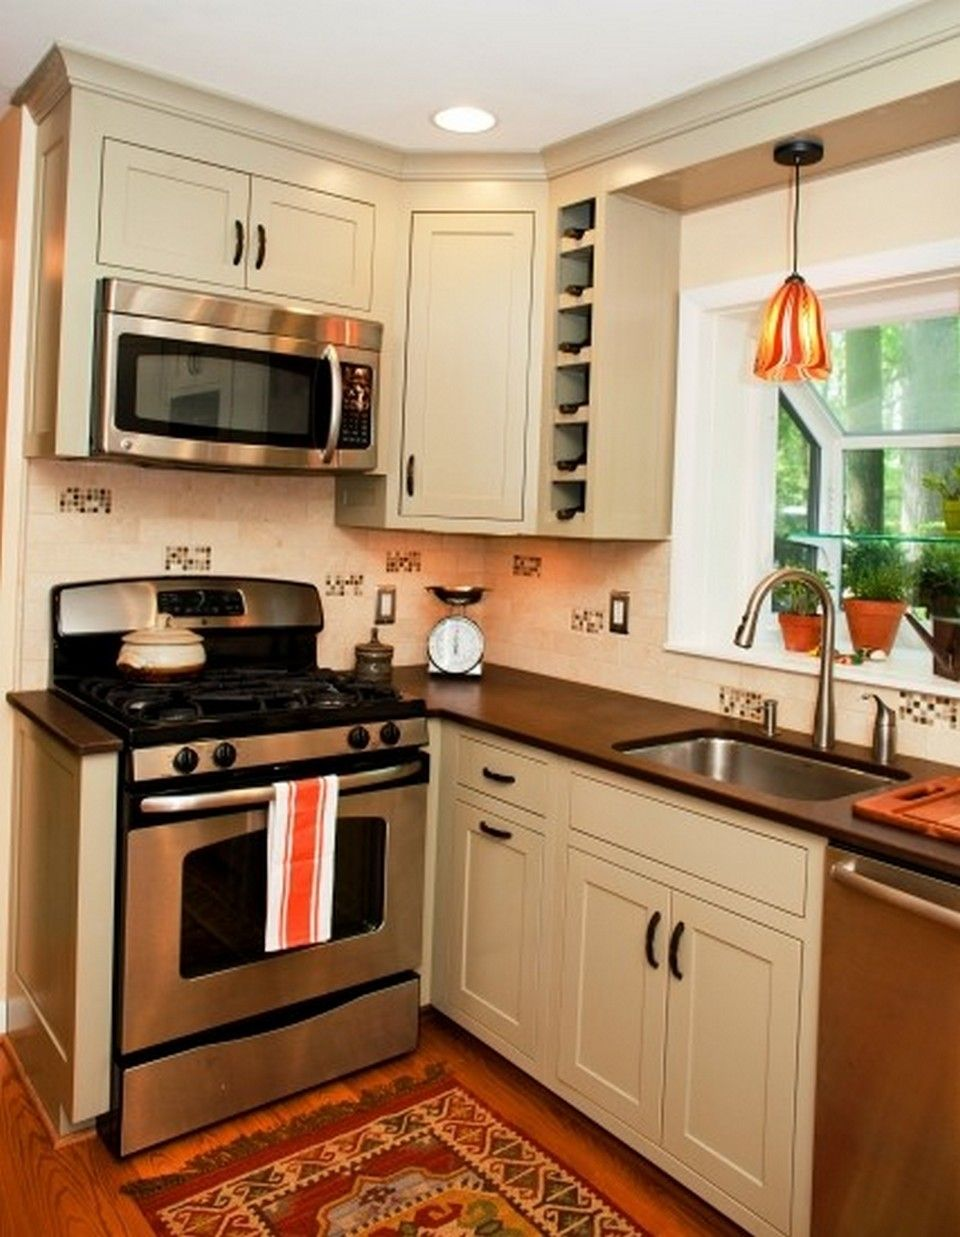 99+ Small Kitchen Remodel and Amazing Storage Hacks on A